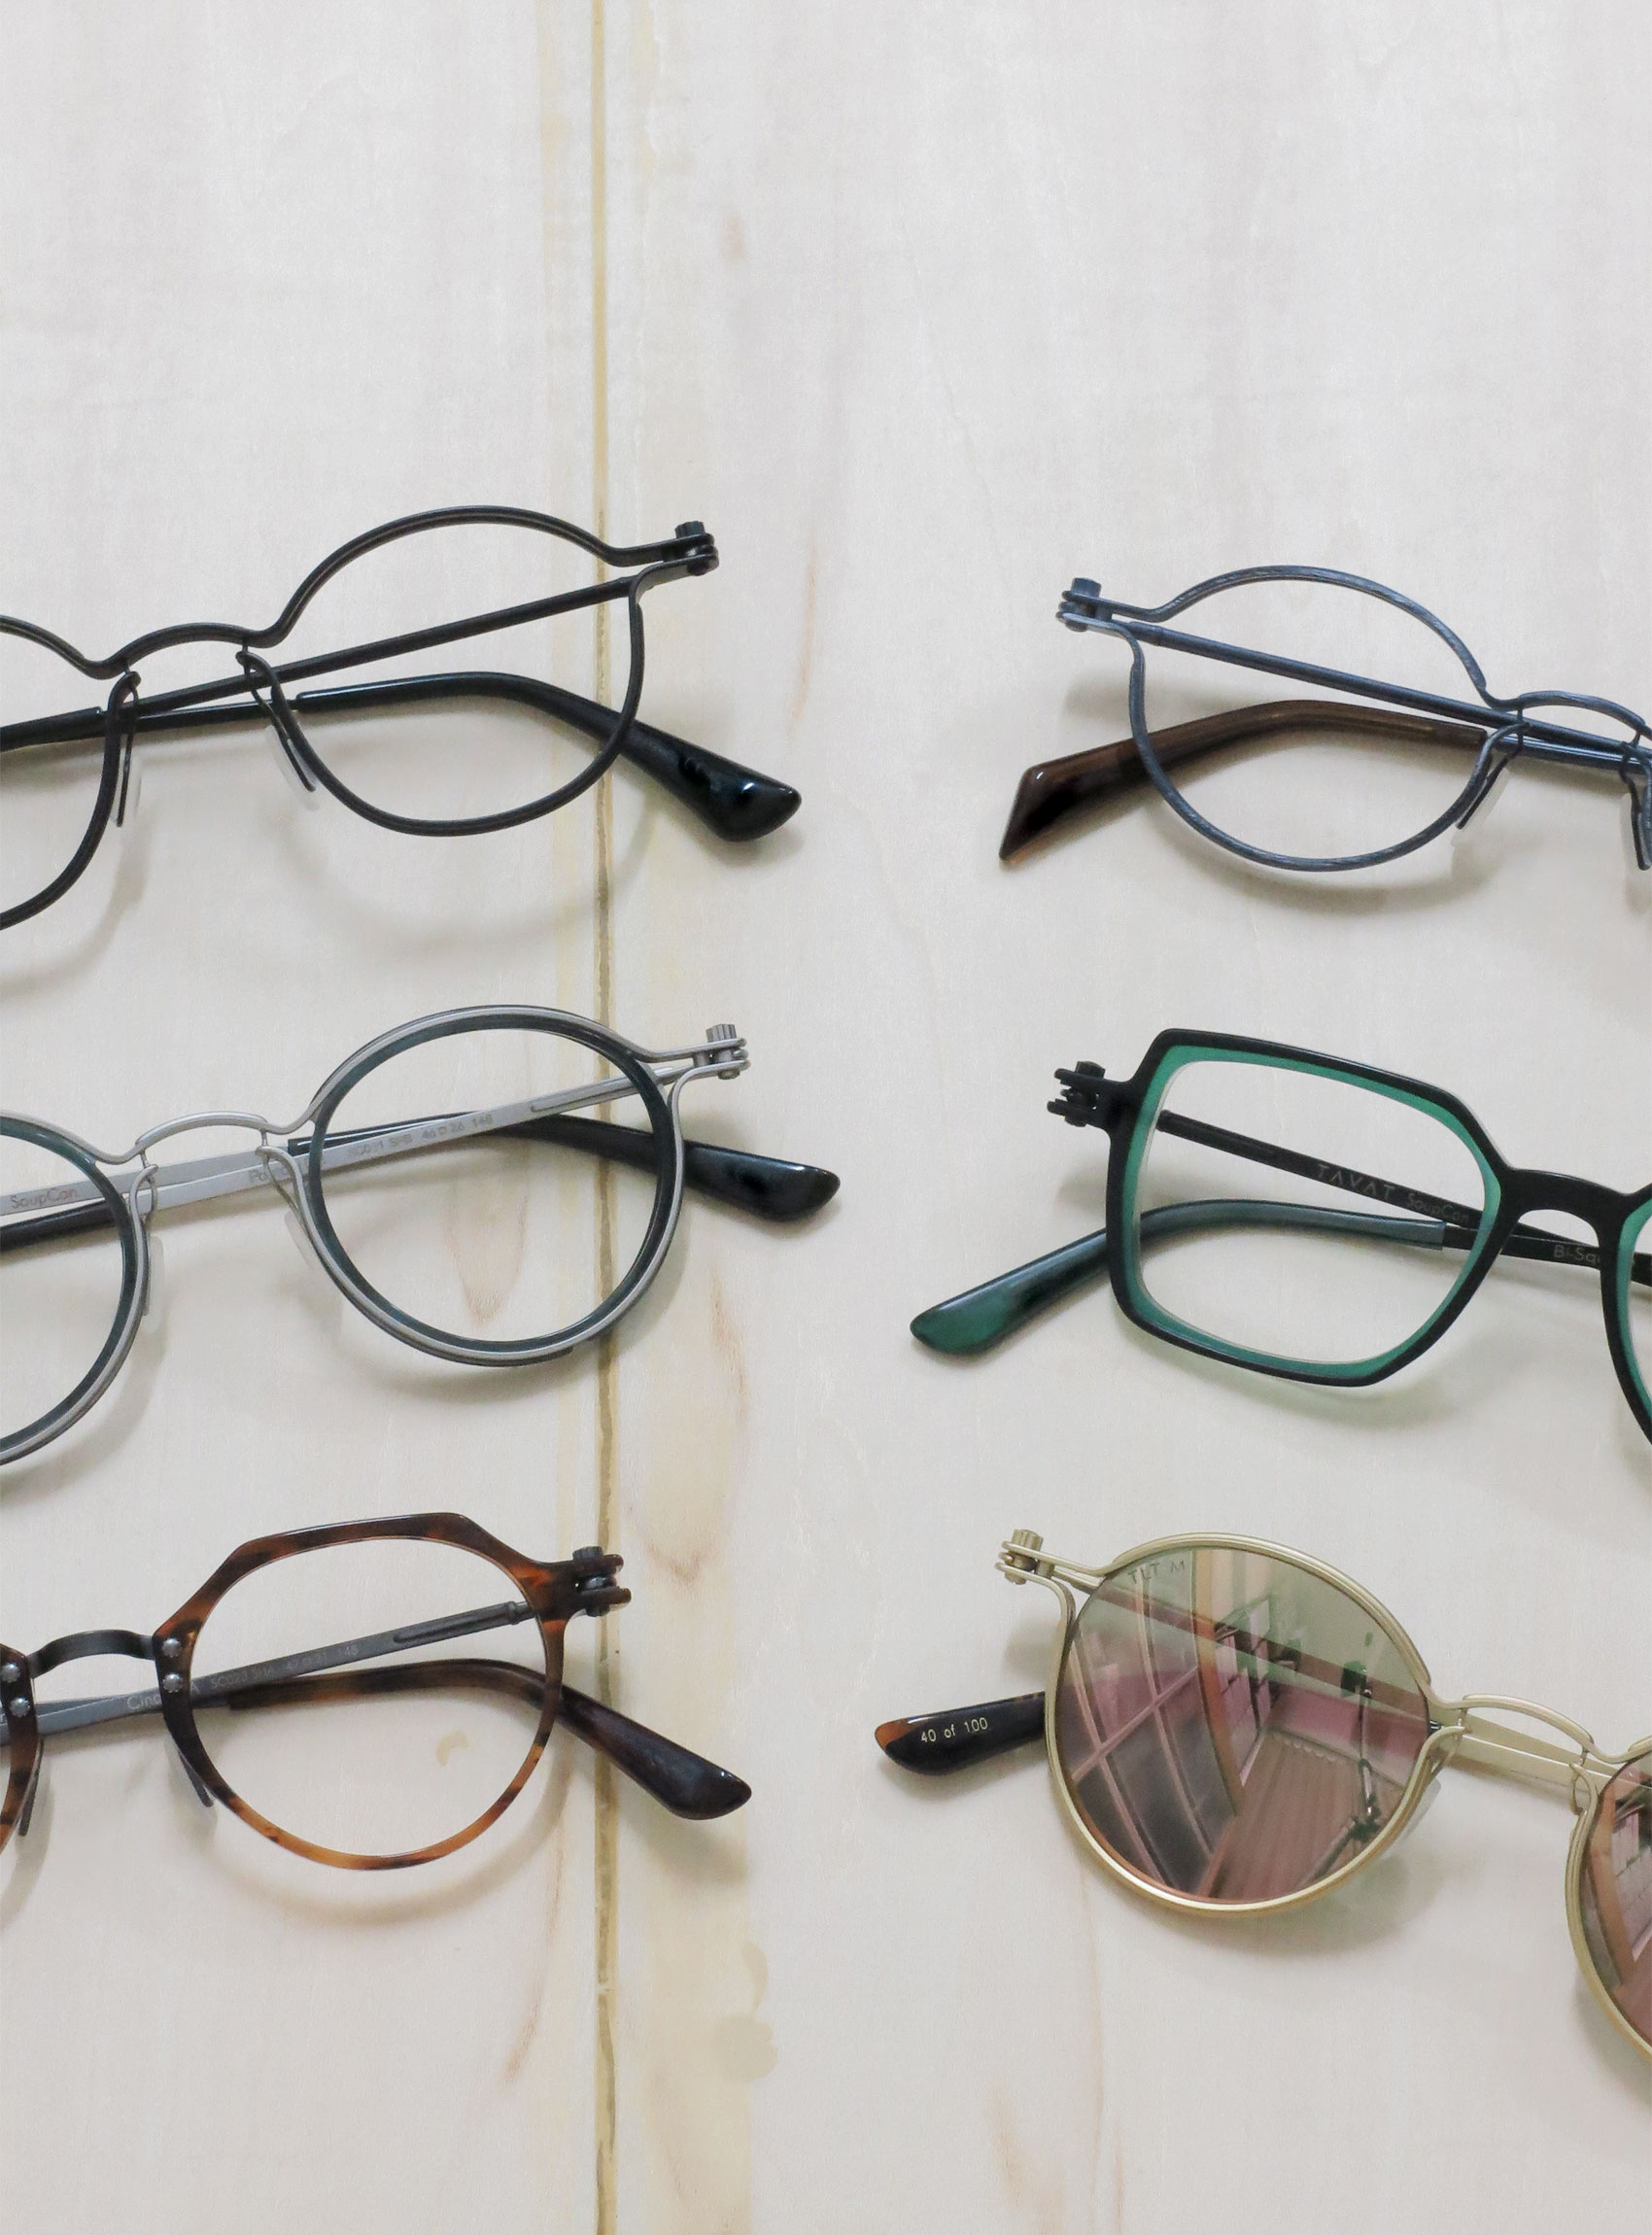 TAVAT EYEWEAR/SoupCan collection